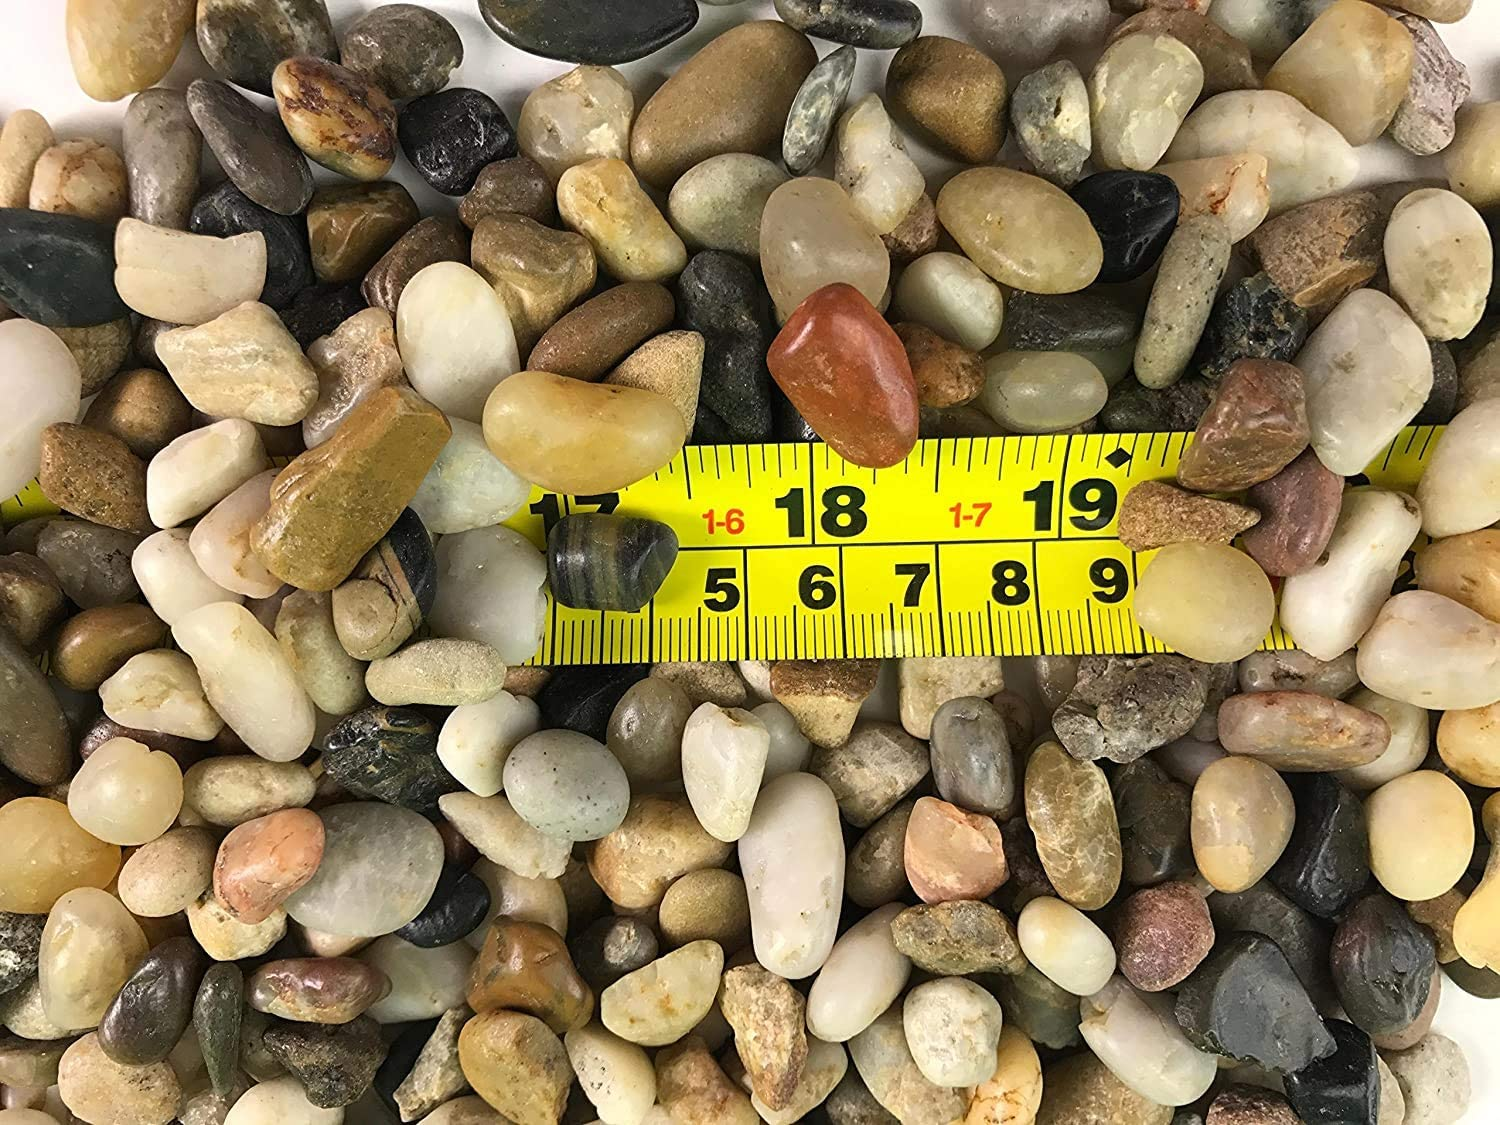 RG() 5 LB Polished Mixed Color Stones Small Decorative River Rock Stones